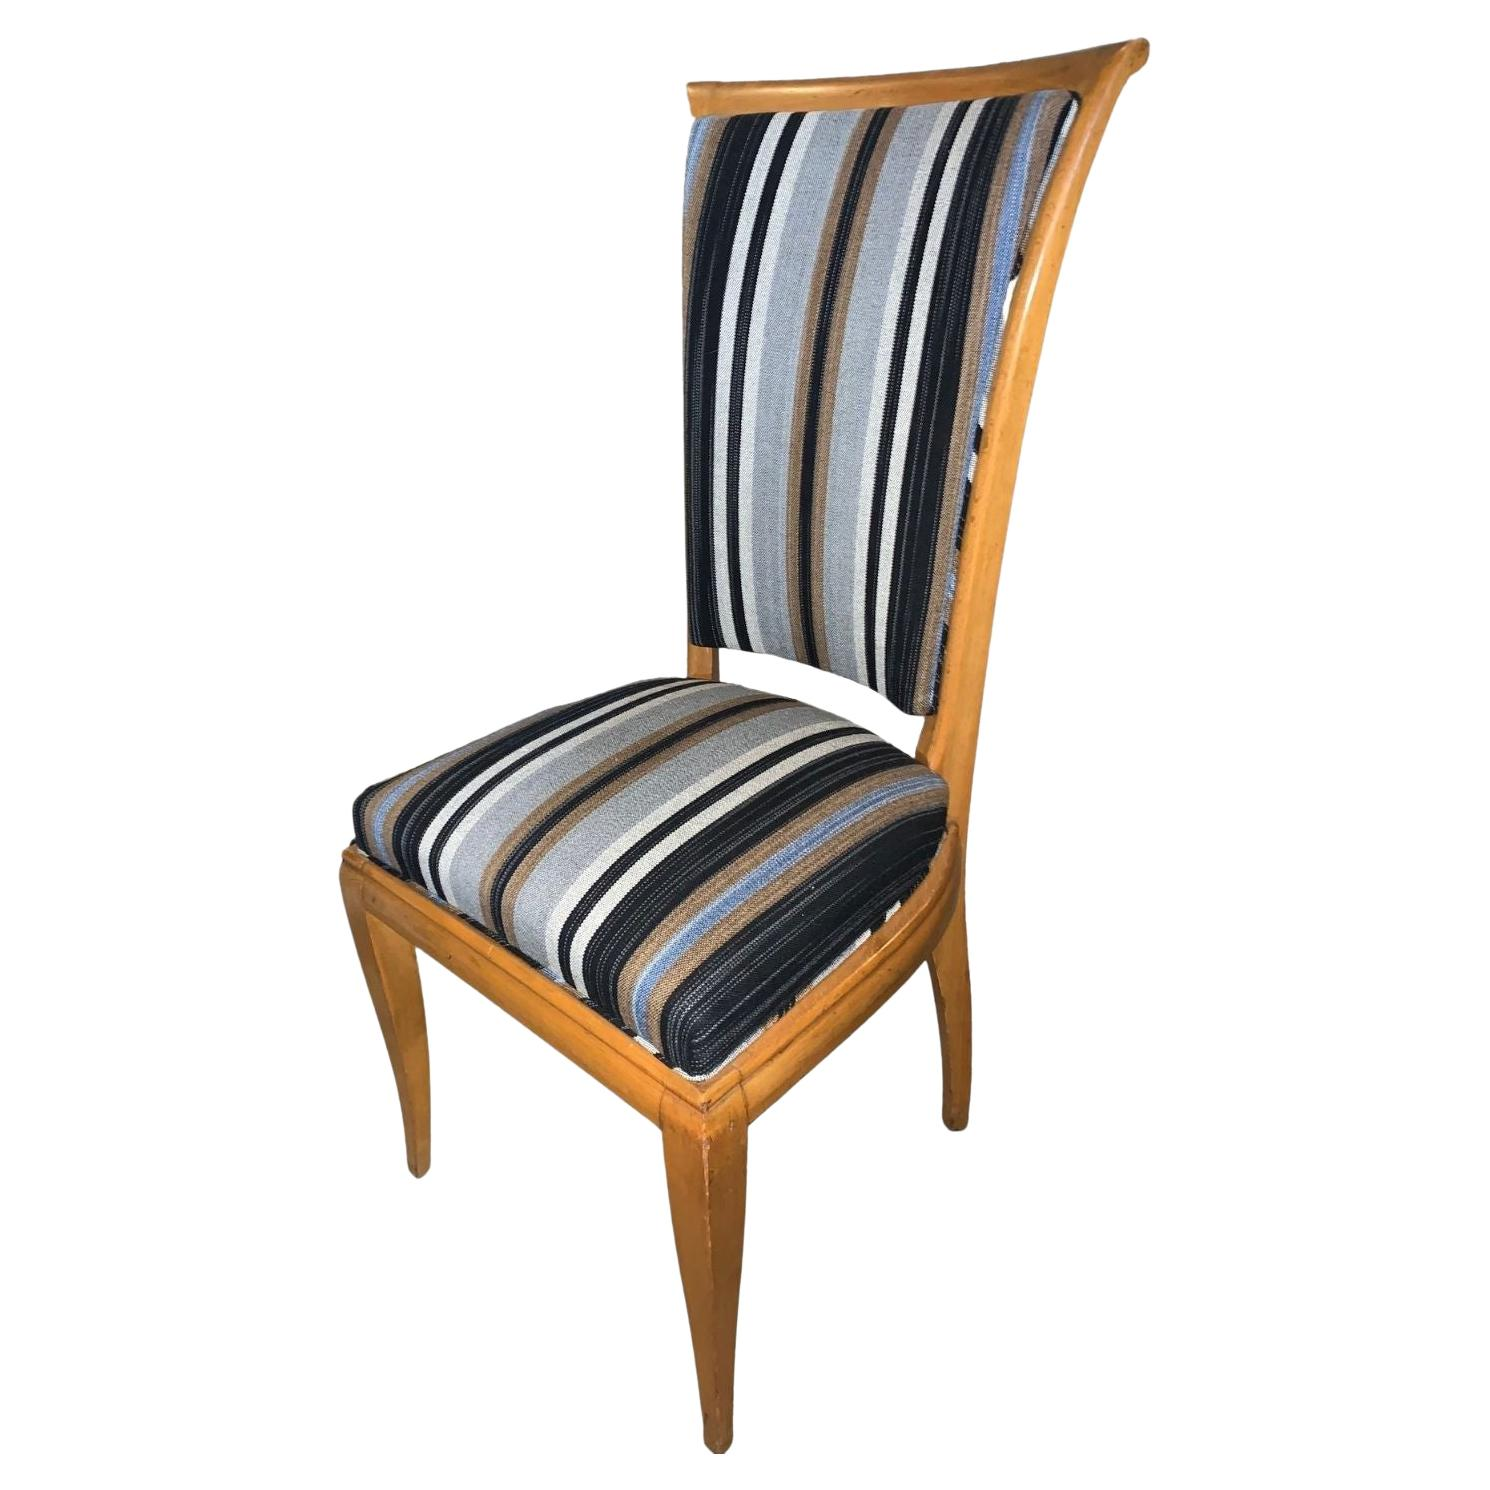 French 1940s Chair in Cherry Wood